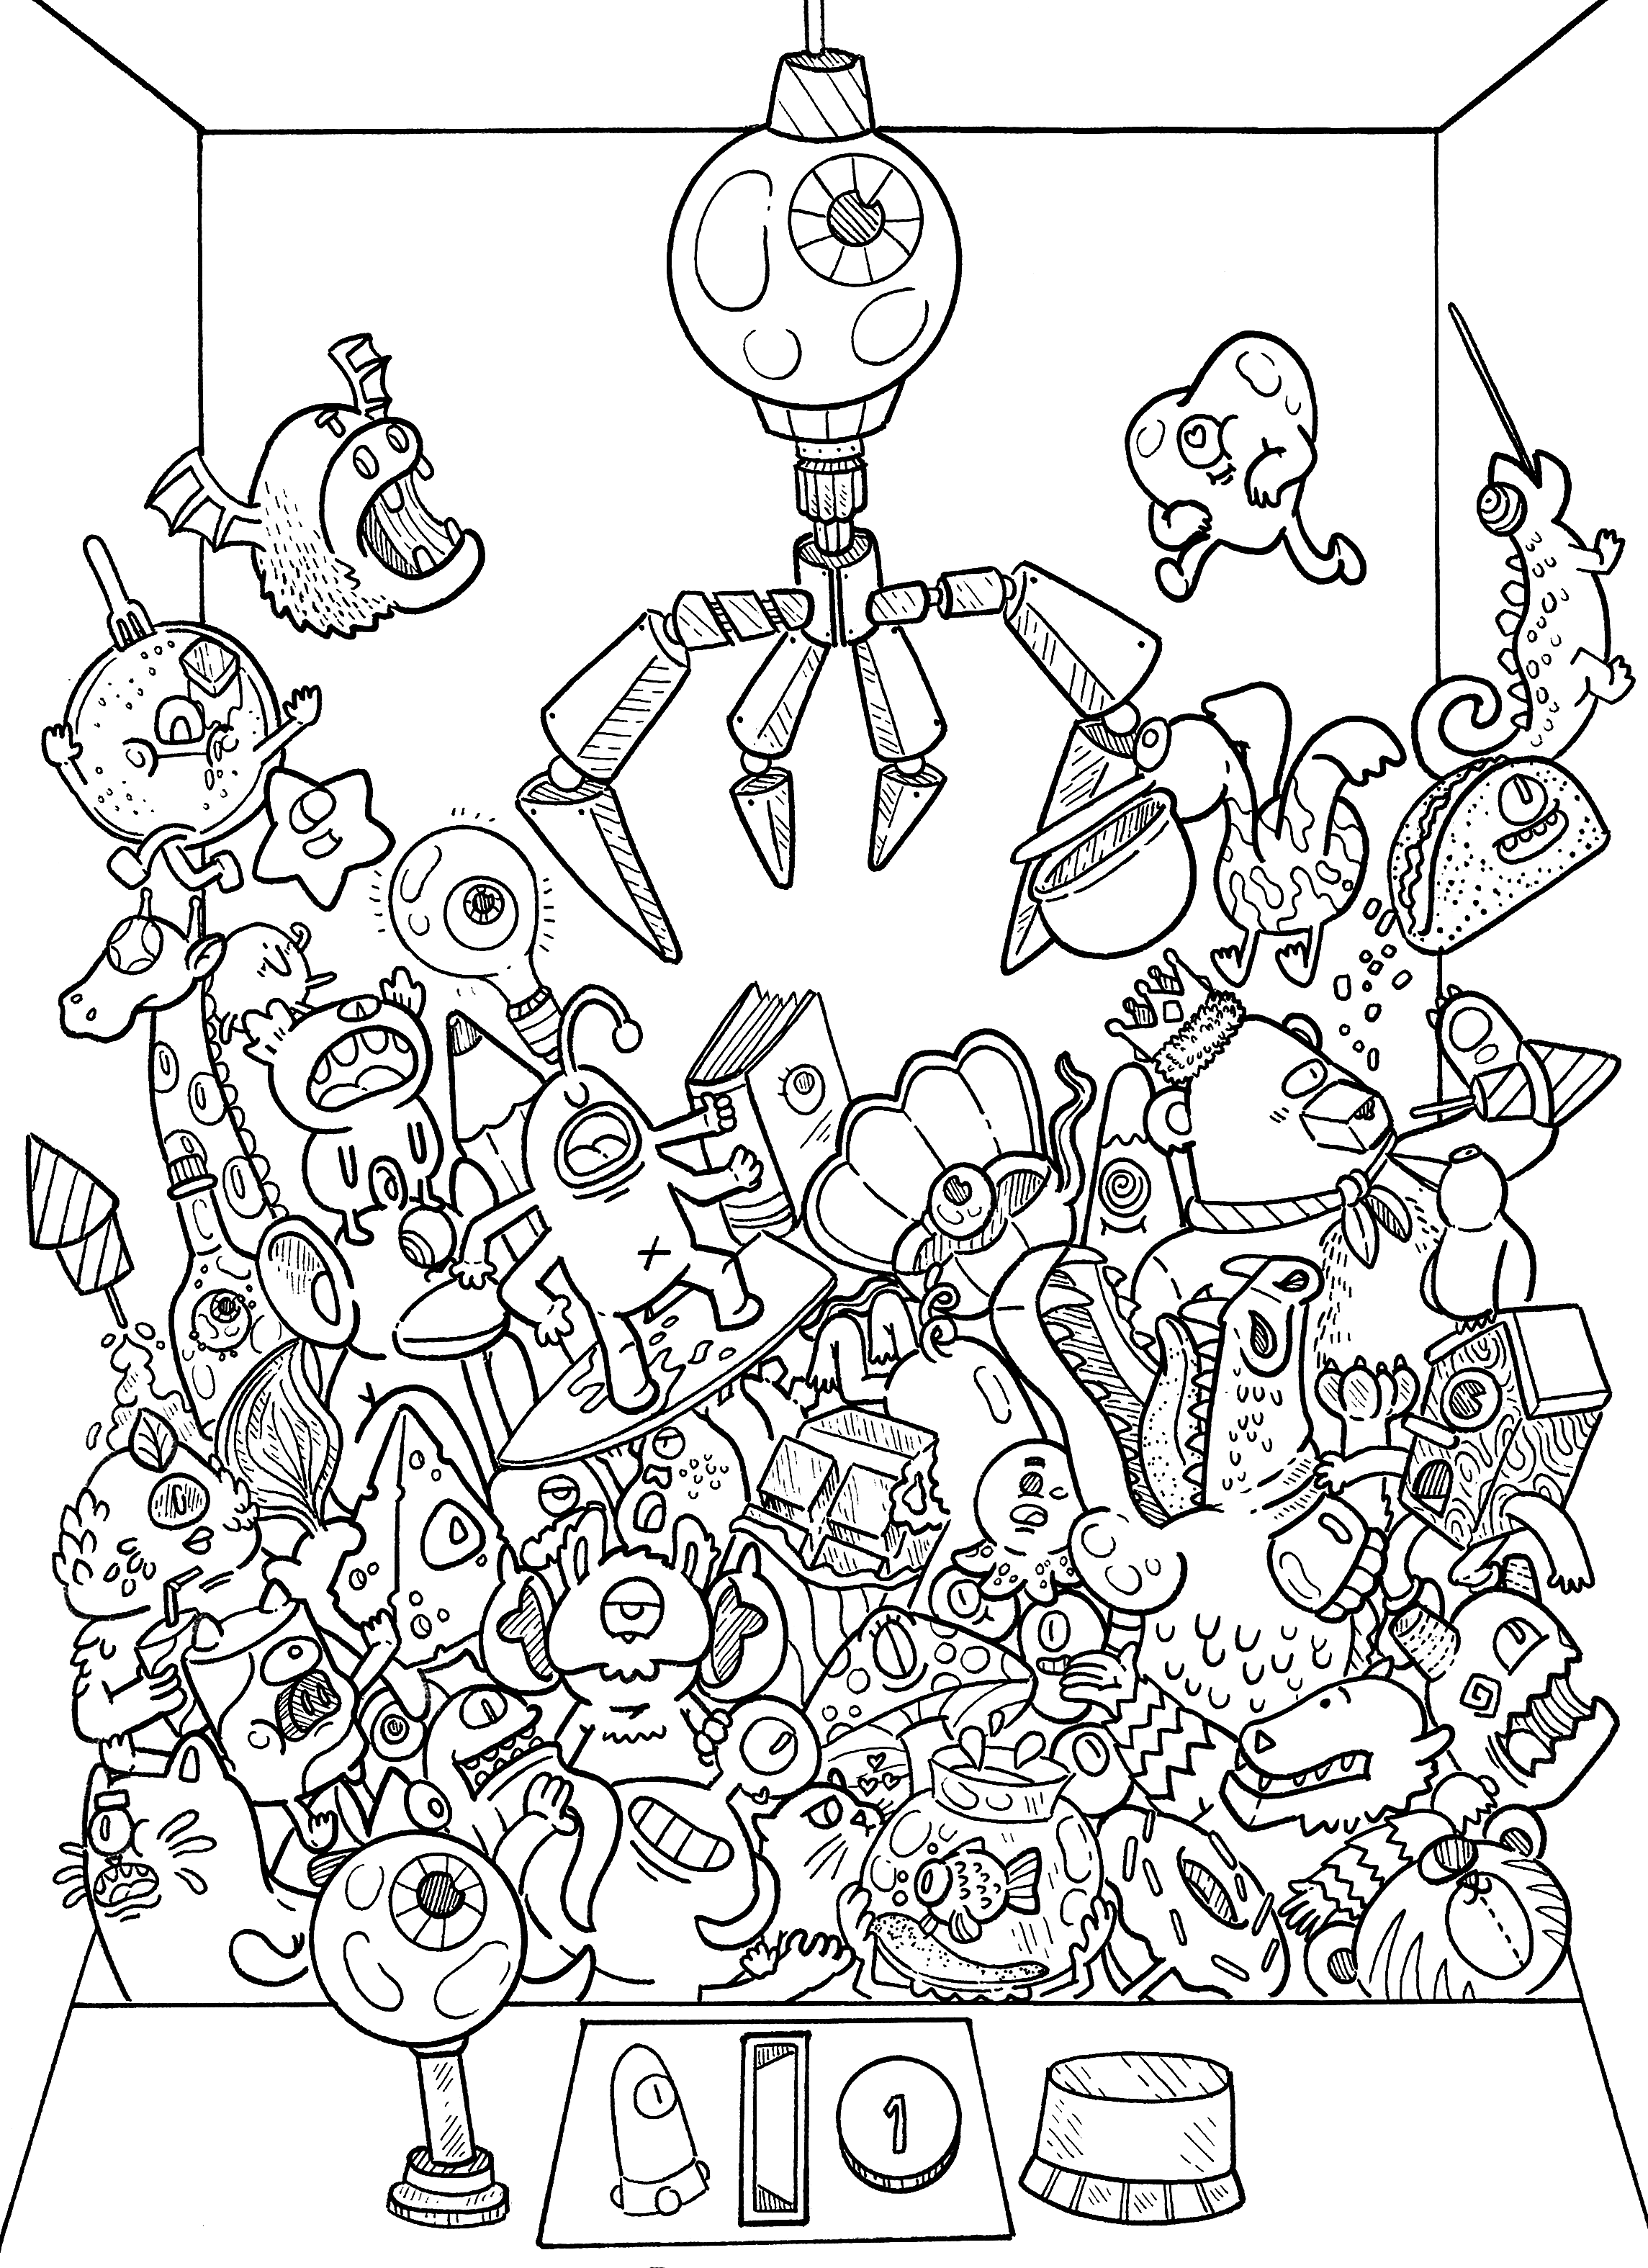 svg black and white stock doodle coloring book